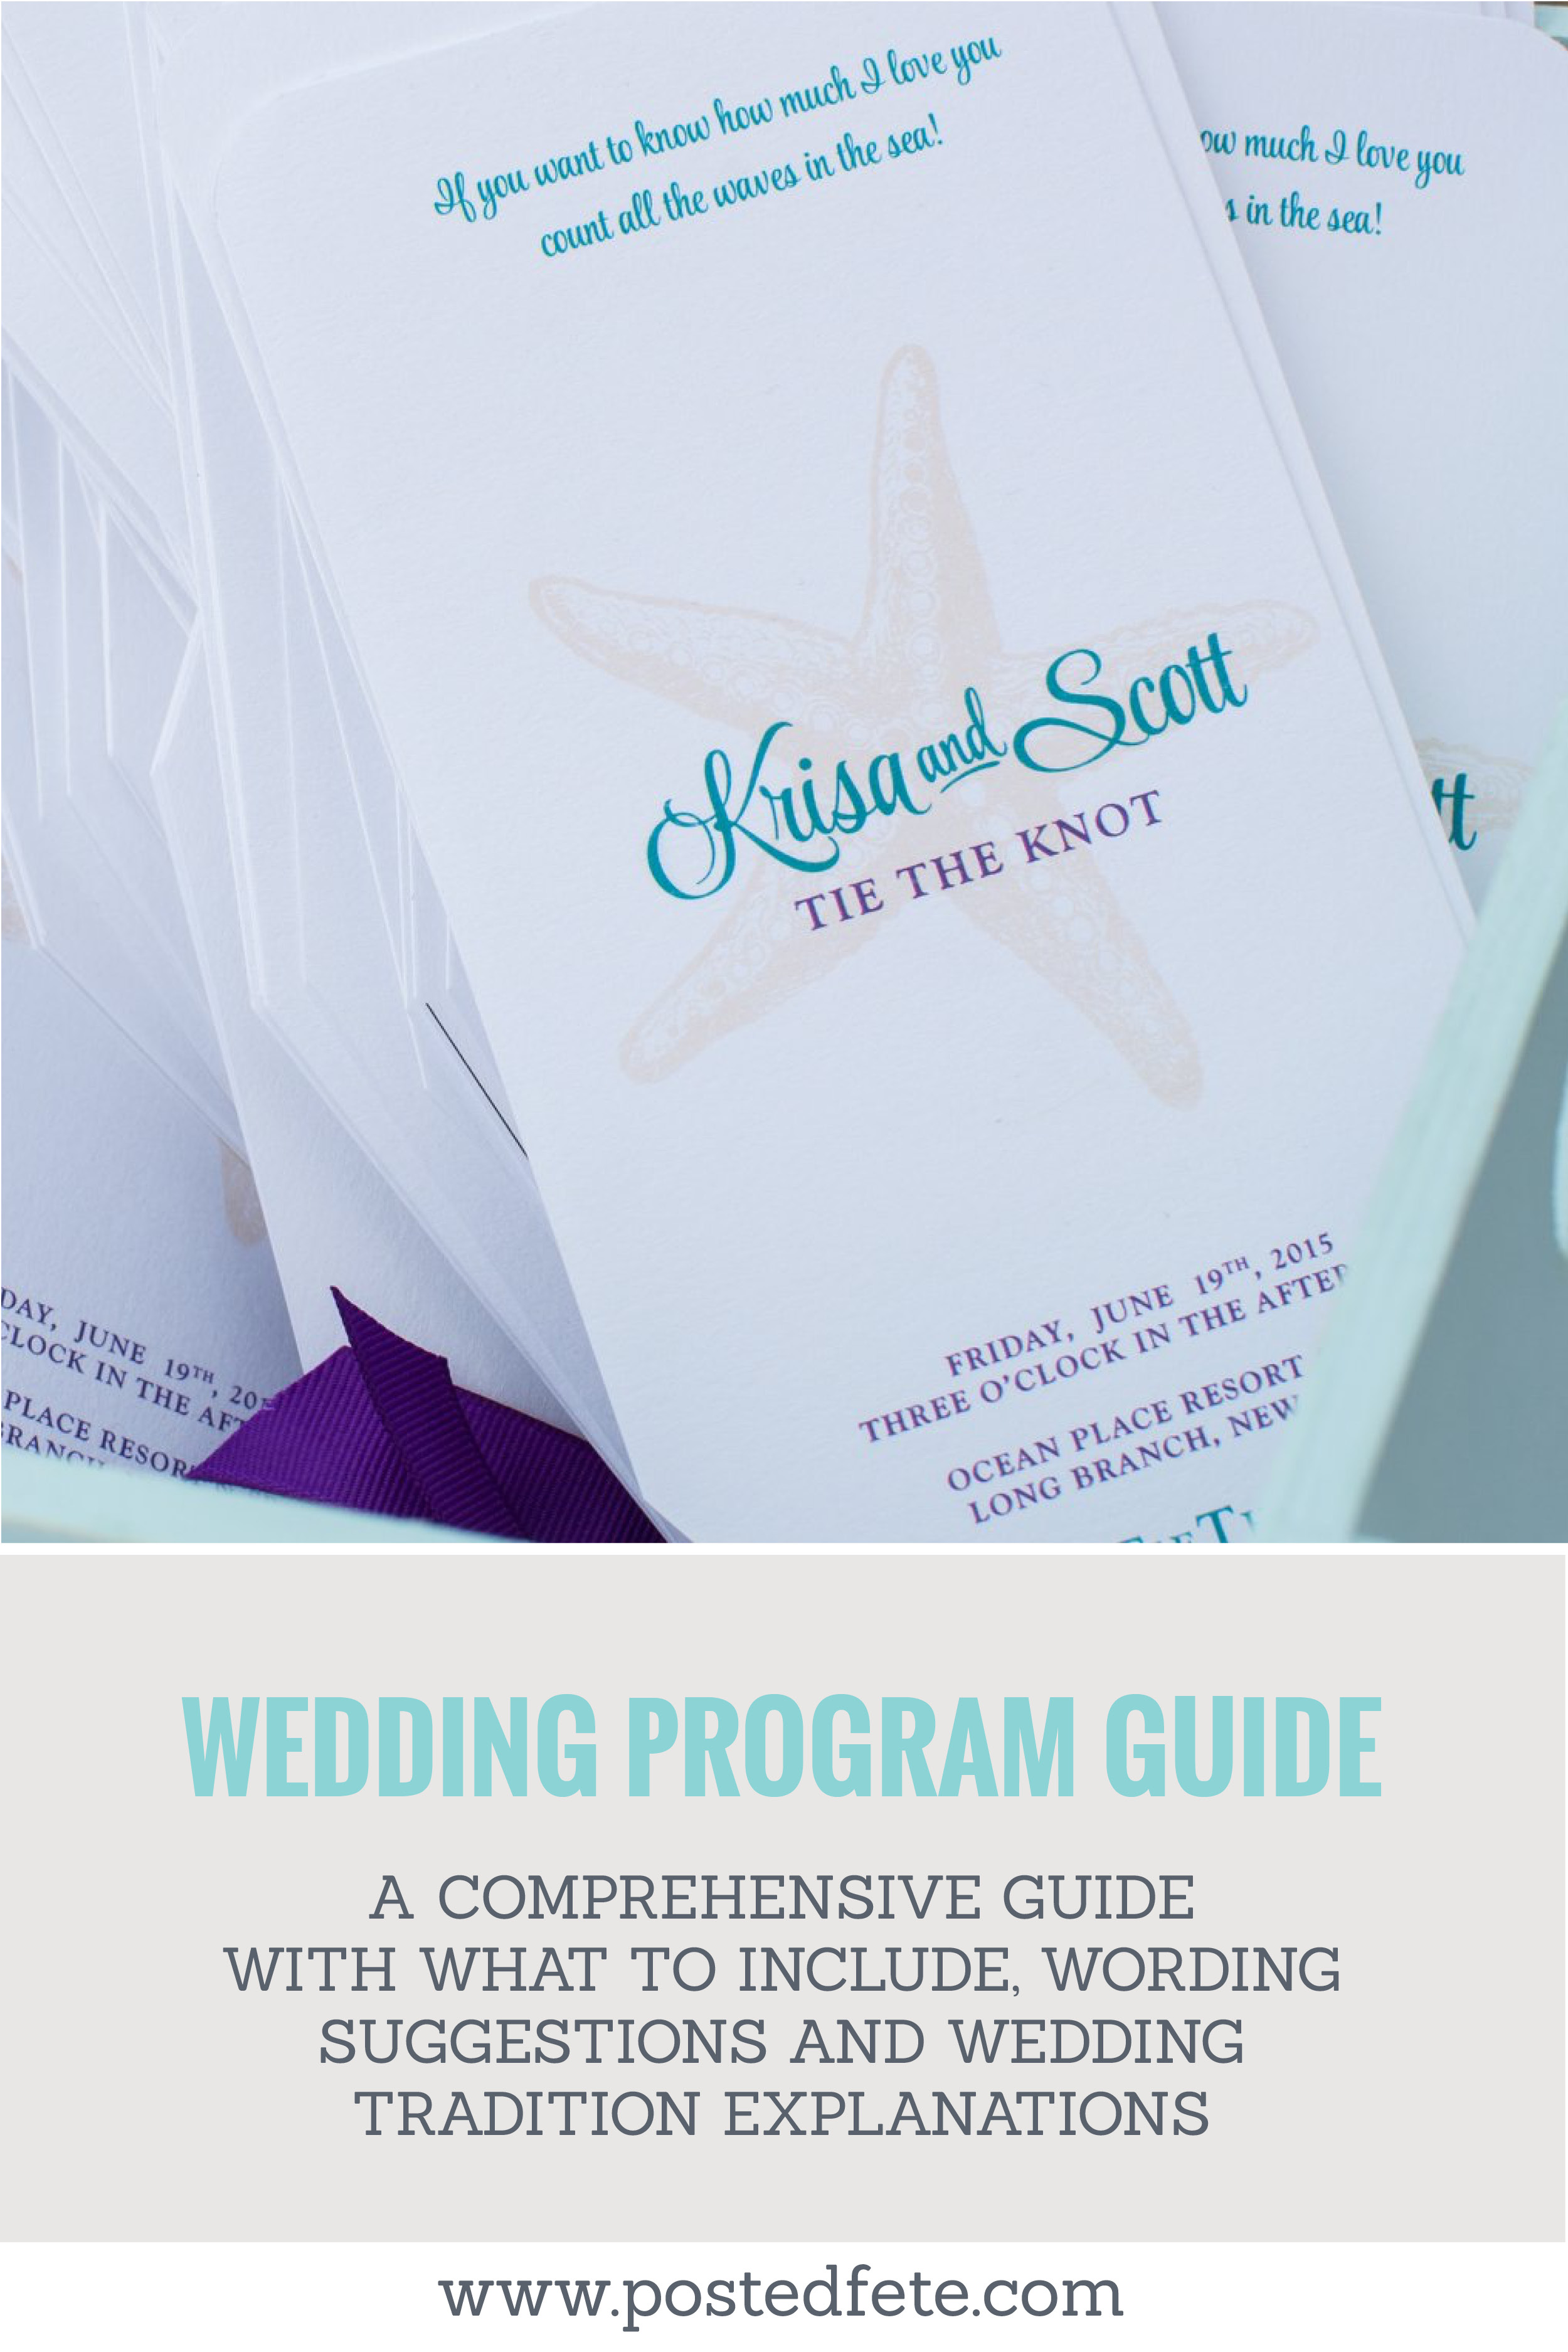 A Guide to Wedding Programs | Posted Fete